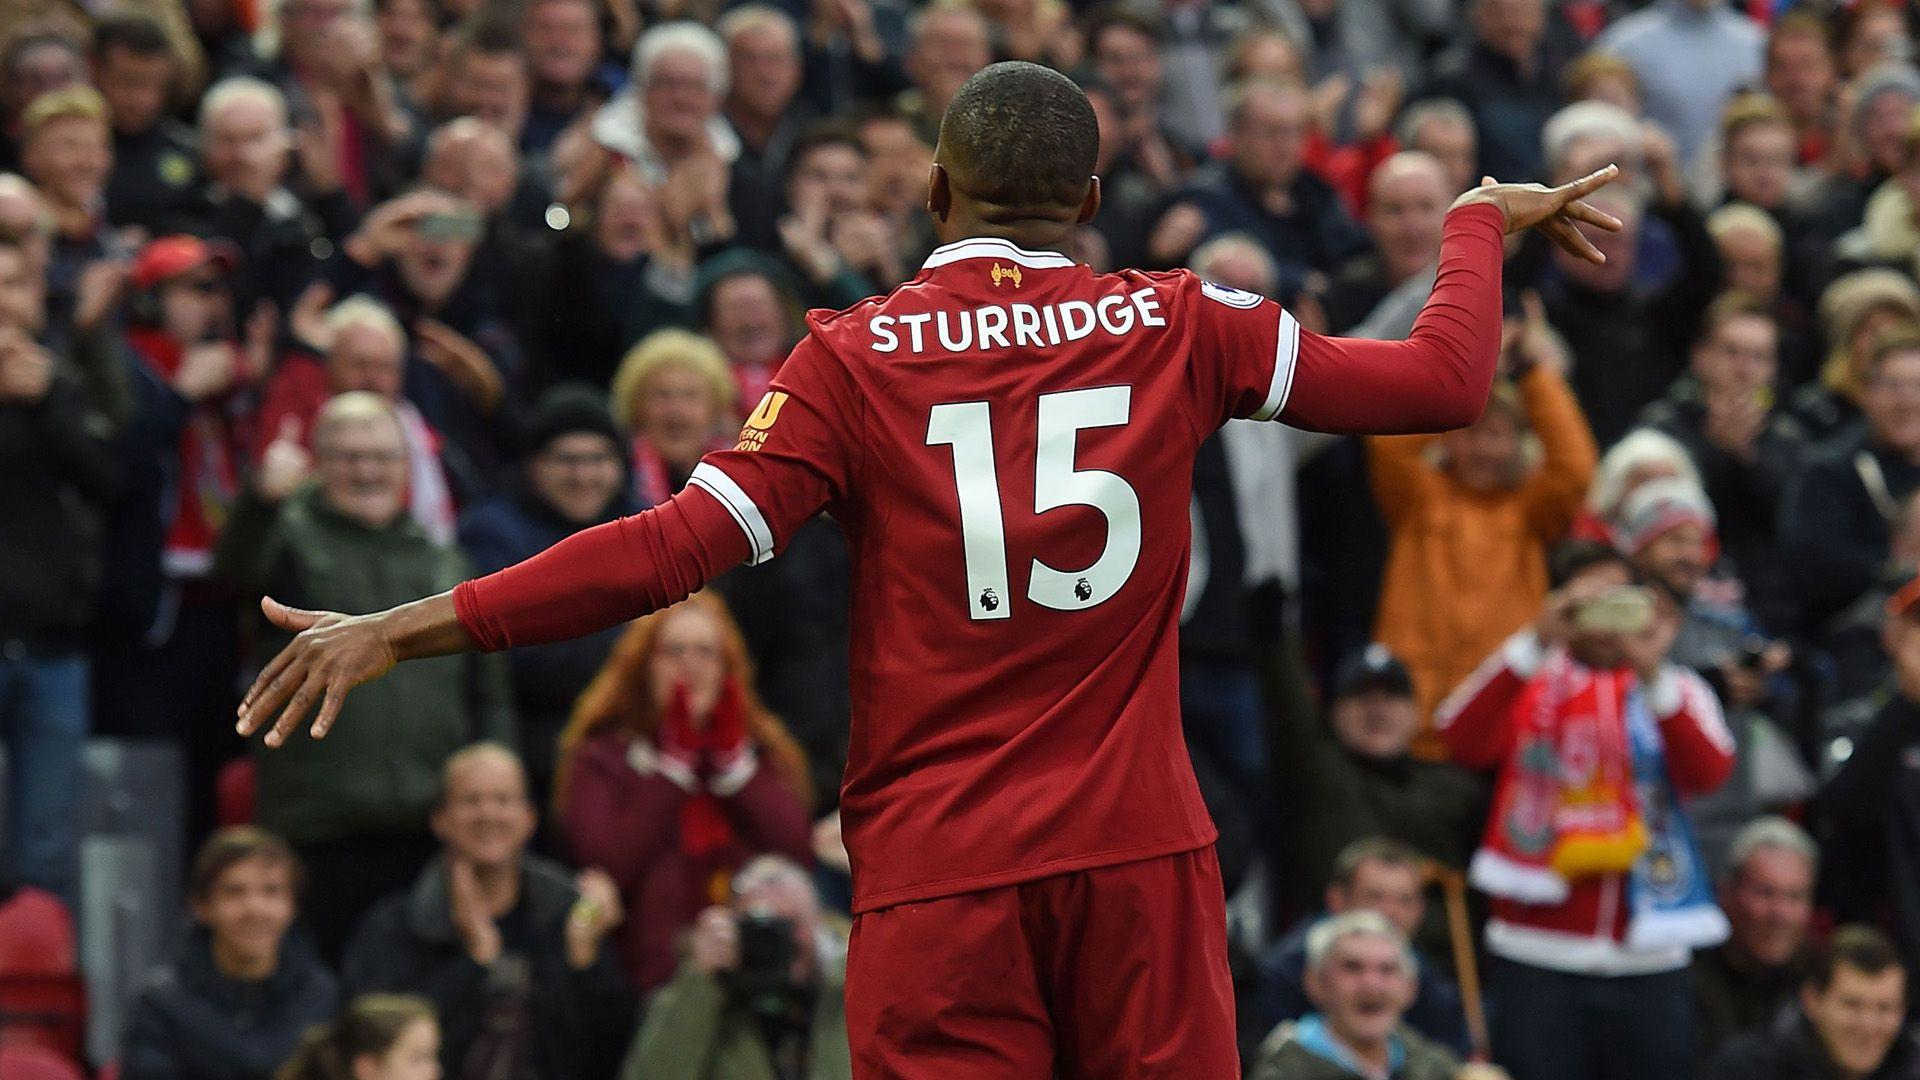 Daniel Sturridge Wallpapers